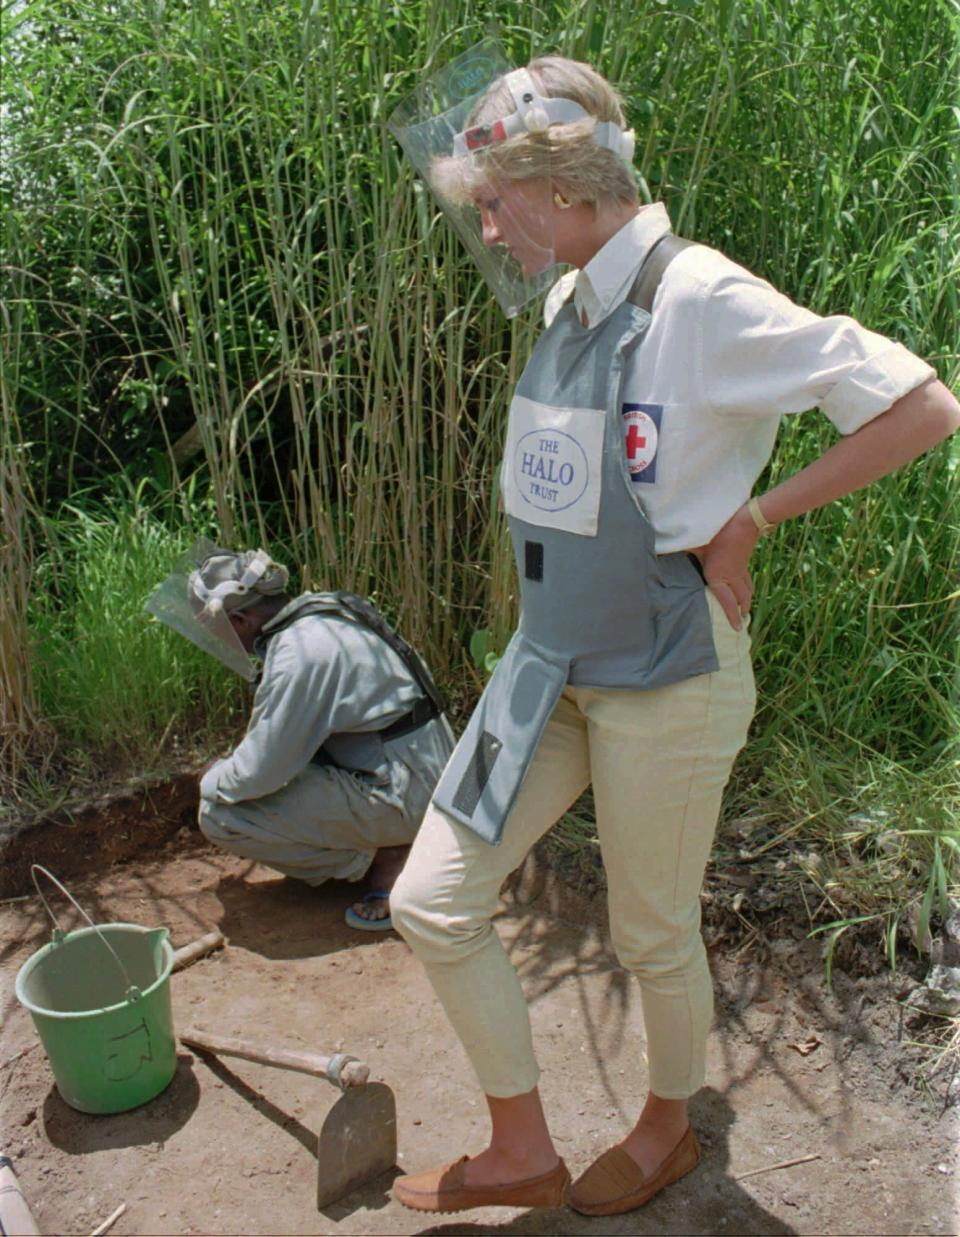 """FILE - In this Jan. 15, 1997 file photo, Diana, Princess of Wales, wearing protective gear, watches a land-mine clearing demonstration in Huambo, central Angola, one of the most densely mined areas in the country. For someone who began her life in the spotlight as """"Shy Di,"""" Princess Diana became an unlikely, revolutionary during her years in the House of Windsor. She helped modernize the monarchy by making it more personal, changing the way the royal family related to people. By interacting more intimately with the public -- kneeling to the level of children, sitting on edge of a patient's hospital bed, writing personal notes to her fans -- she set an example that has been followed by other royals as the monarchy worked to become more human and remain relevant in the 21st century. (AP Photo/Giovanni Diffidenti, File)"""